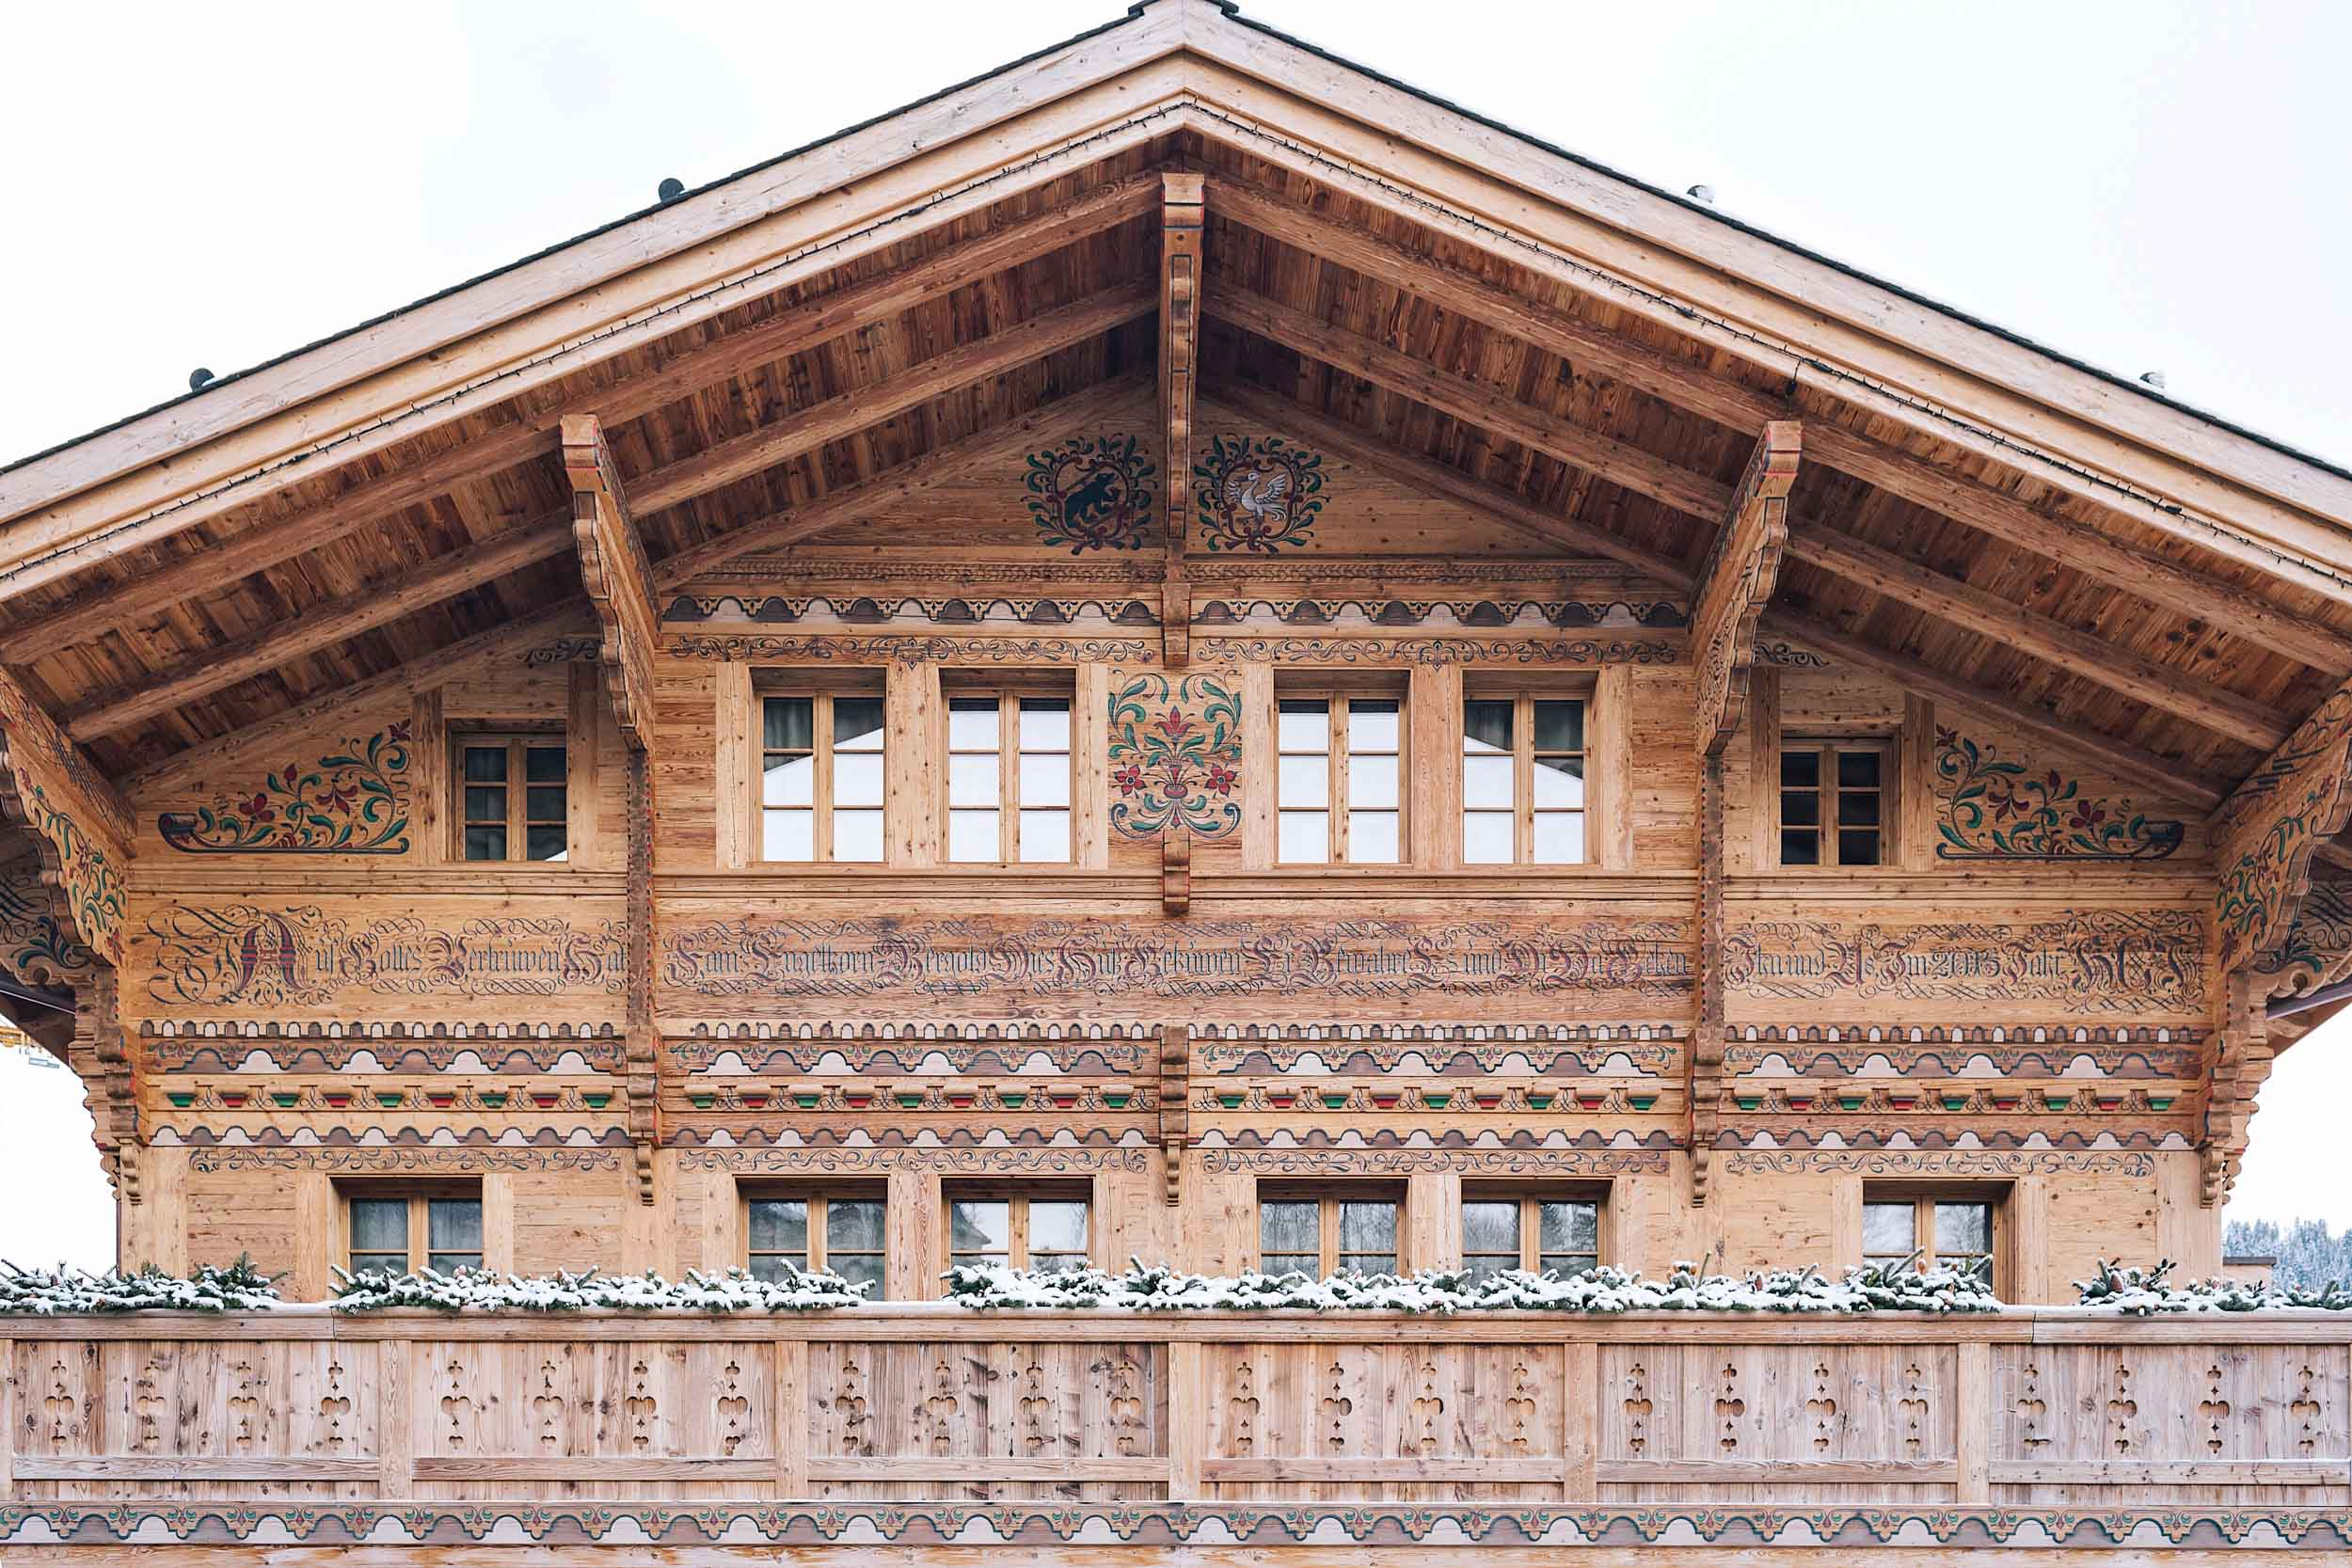 All the buildings and homes in Gstaad are built in this beautiful chalet style